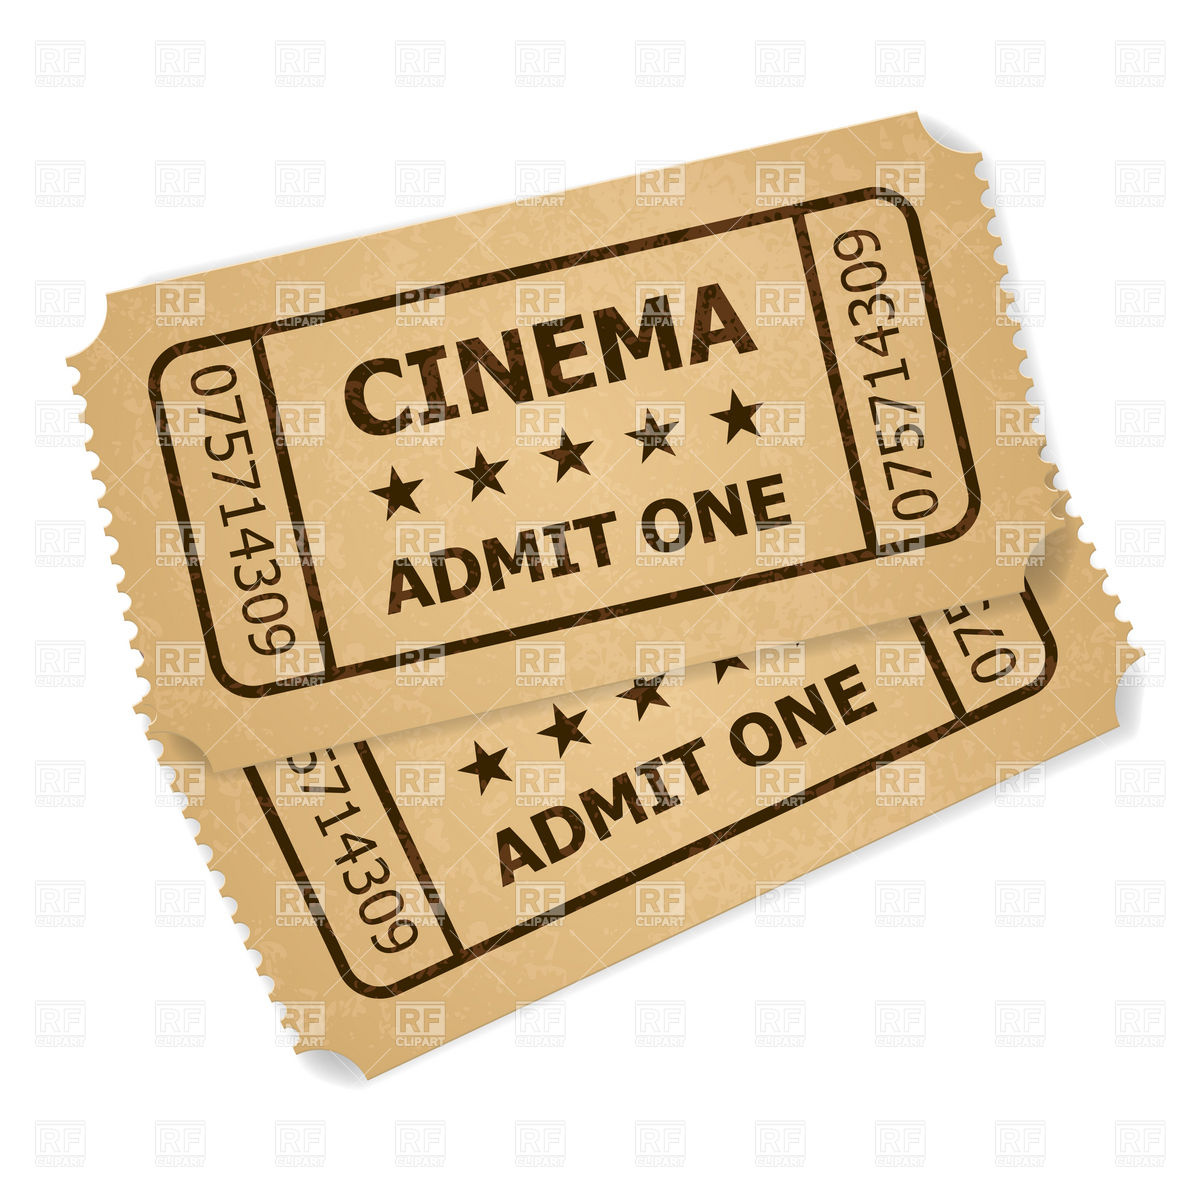 Movie ticket stub clipart.